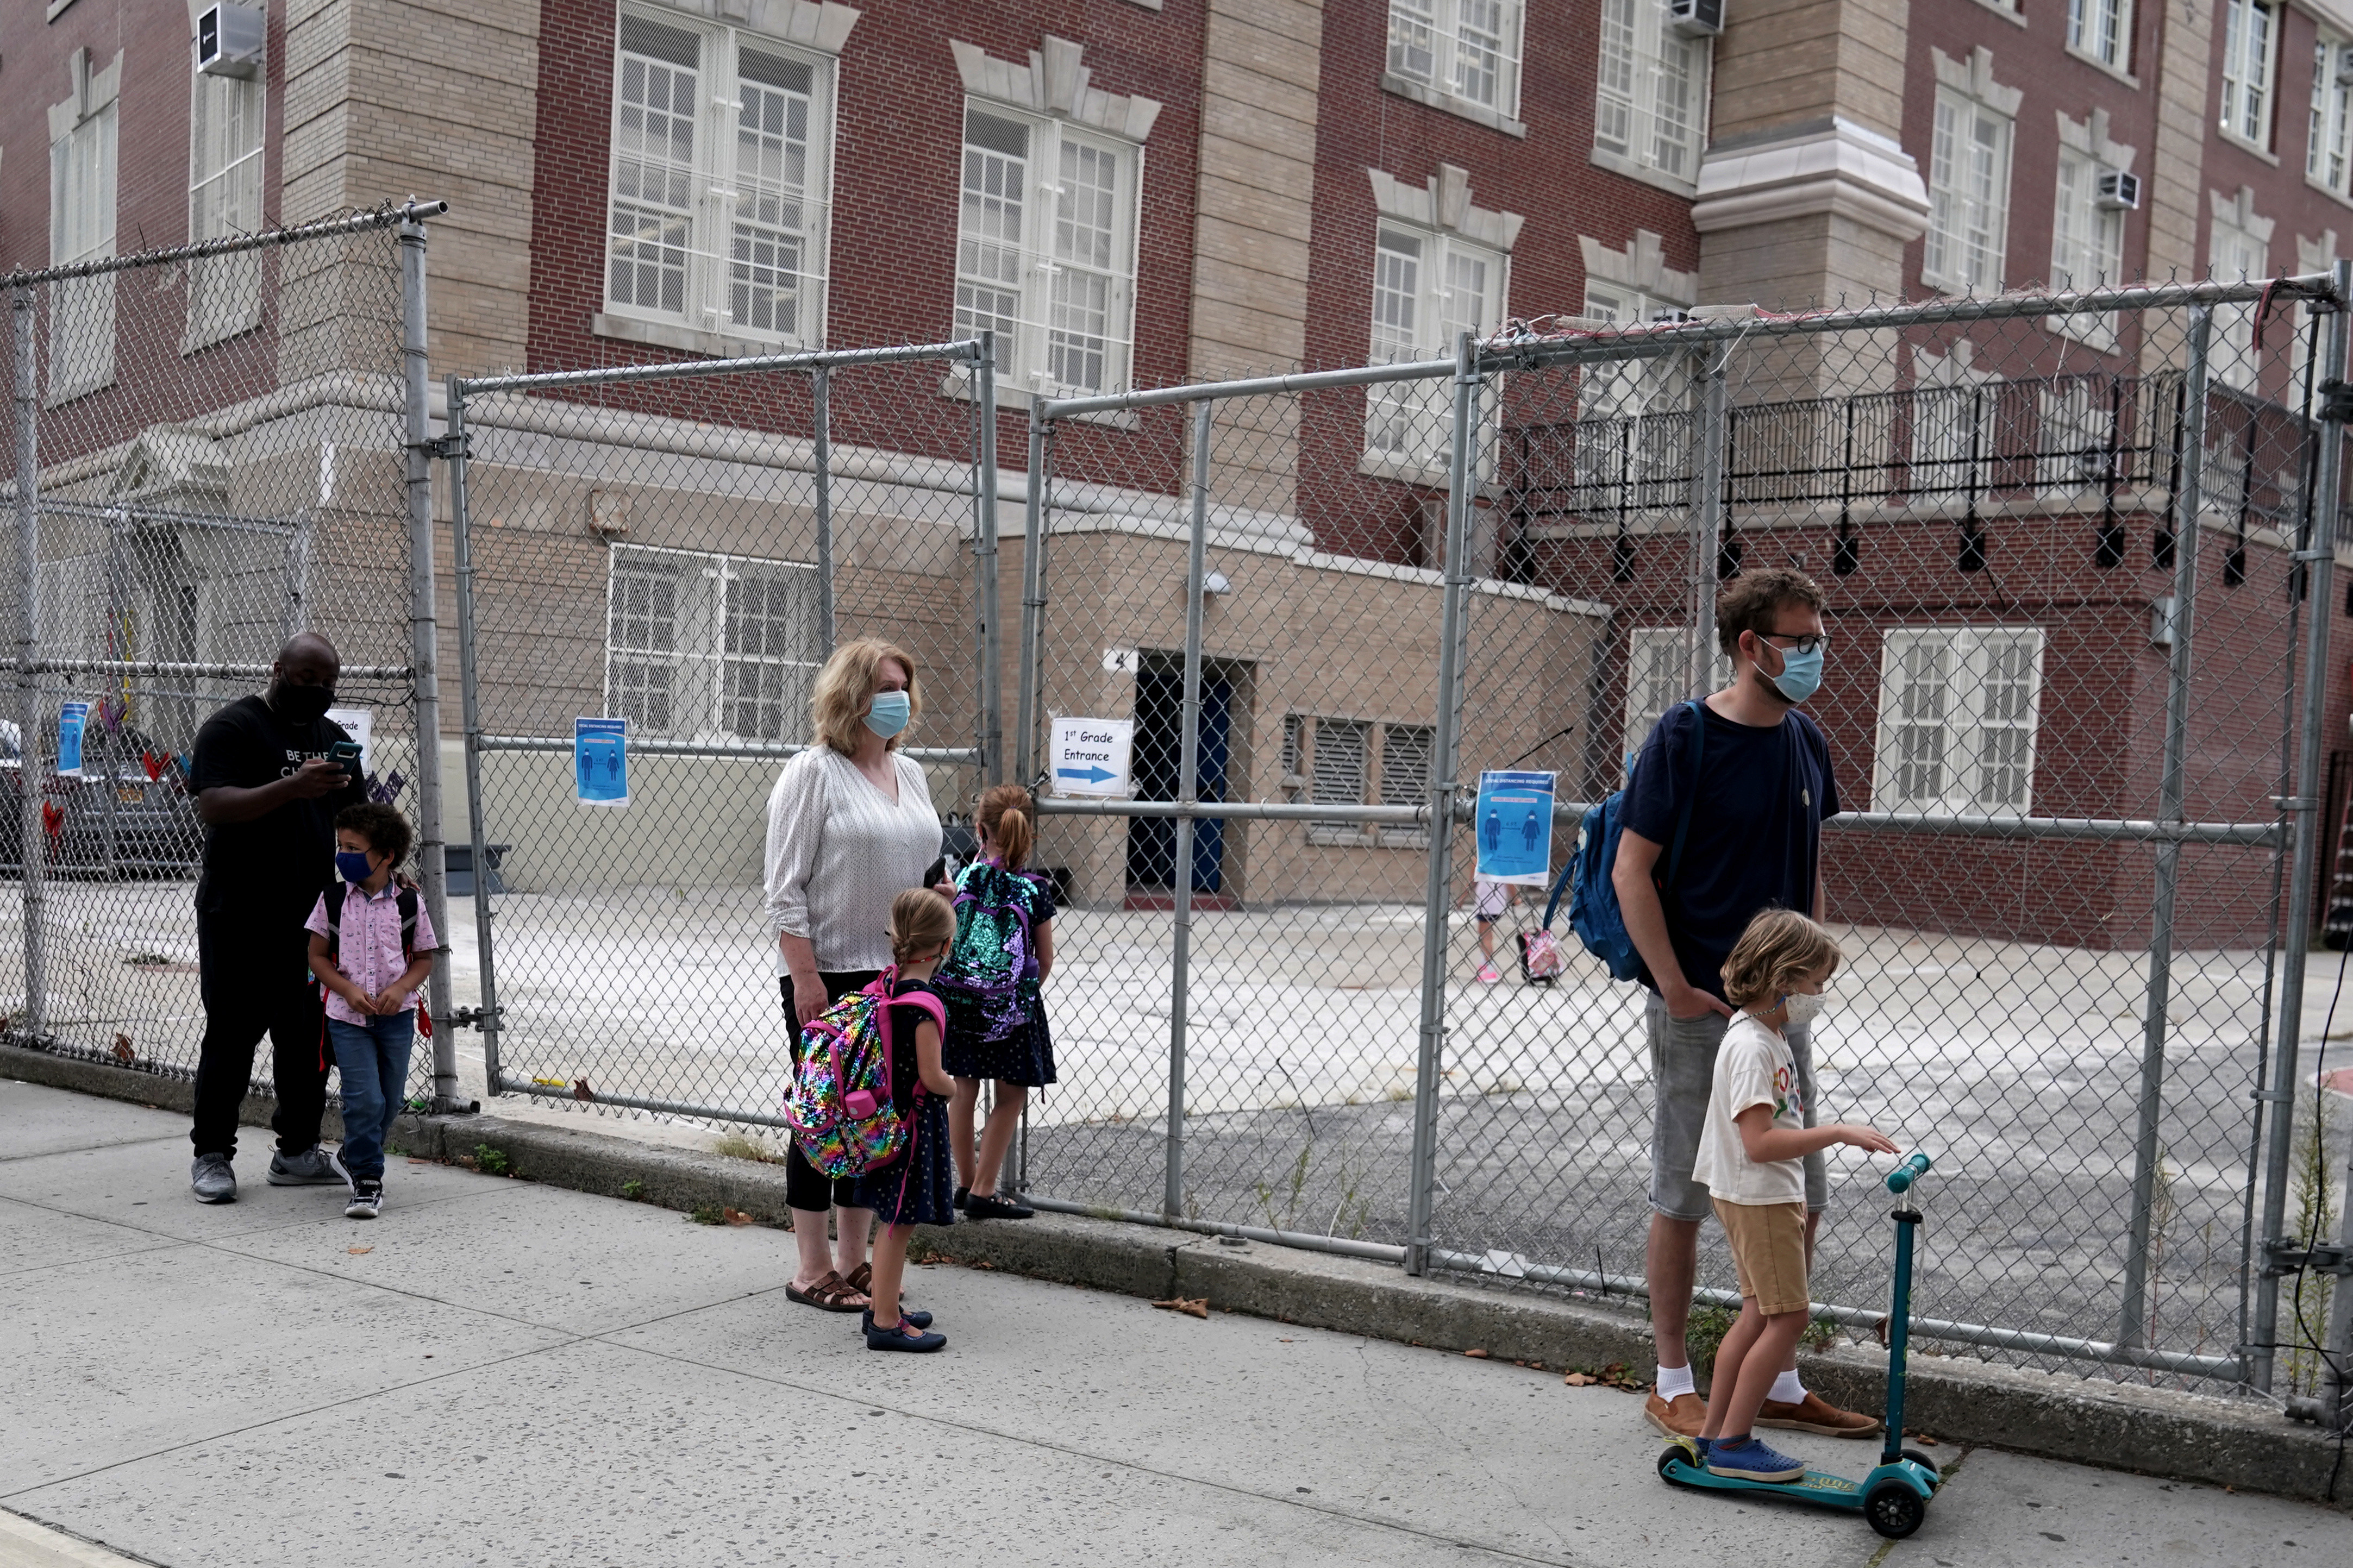 Parents line up with their children before the first day of grade 1 at P.S. 130 in the Brooklyn borough of New York City, New York, U.S., September 29, 2020.  REUTERS/Carlo Allegri - RC2E8J9V7UOC